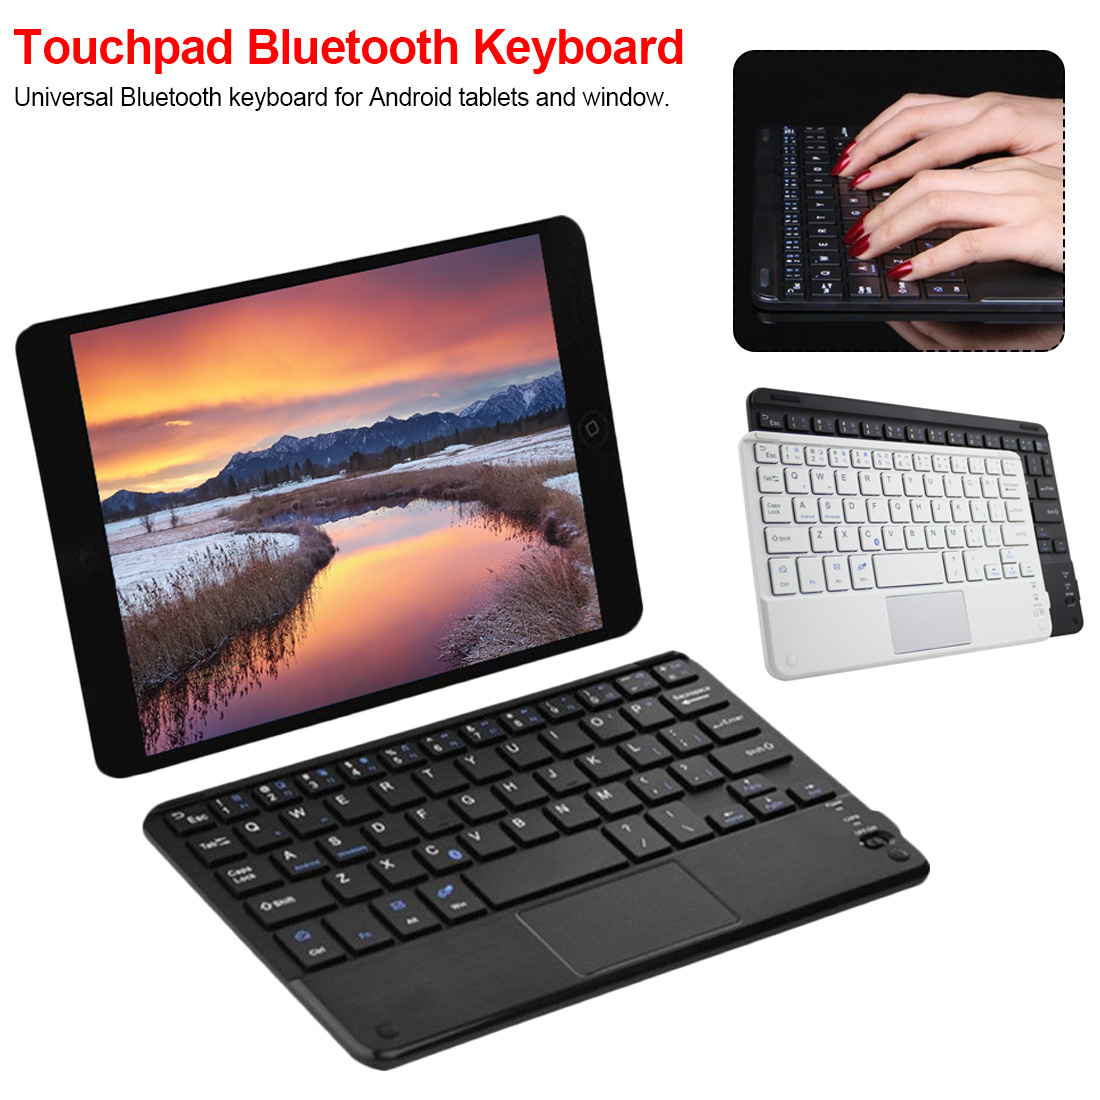 Black 7 Inch For  Universal Android Windows Wireless Bluetooth Keyboard With Touchpad For Android Windows Tablet